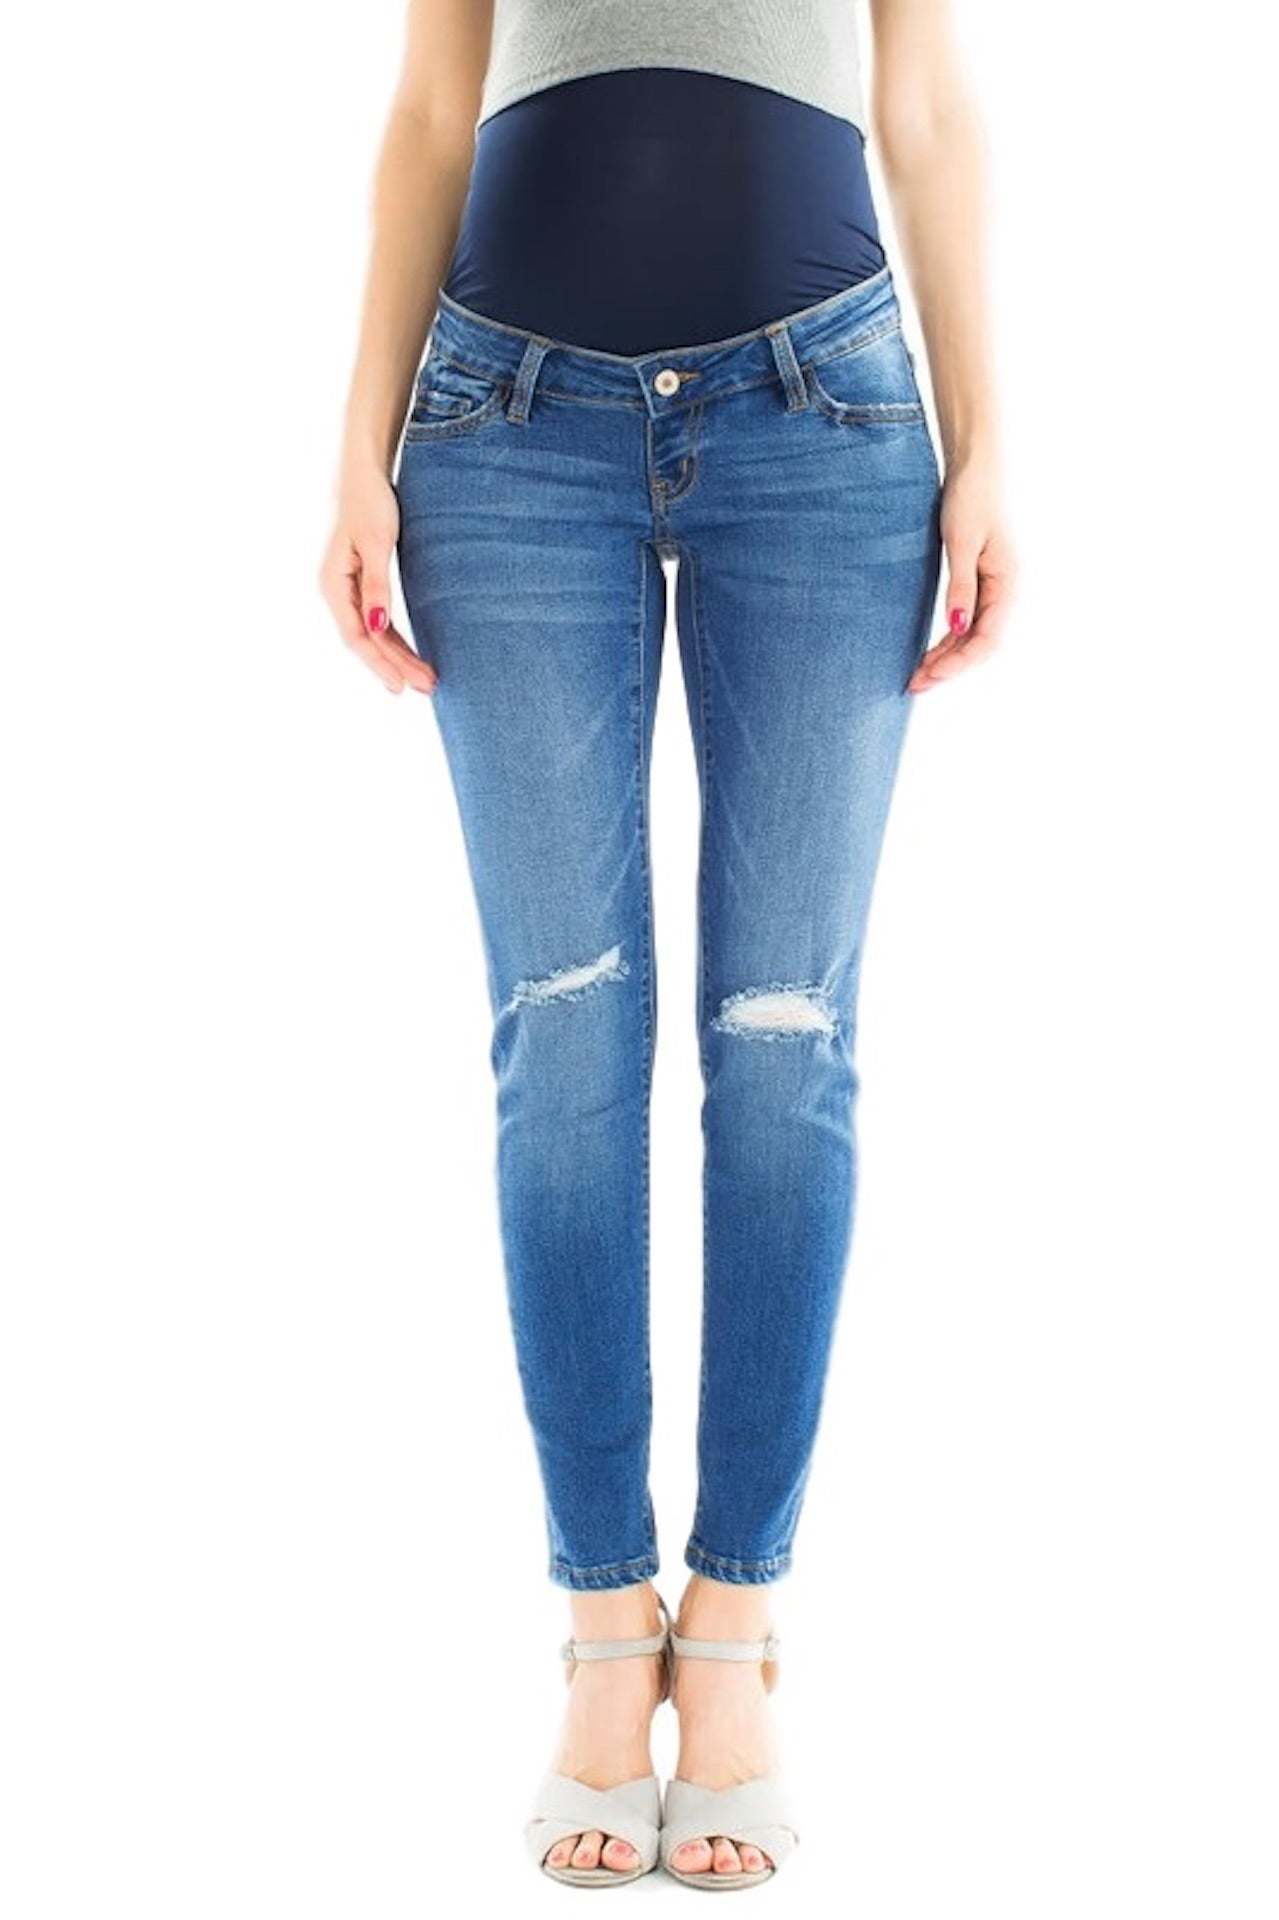 de0931a2cb0da Load image into Gallery viewer, KanCan Maternity Jeans Collection: Summer  2019 Color: Light ...